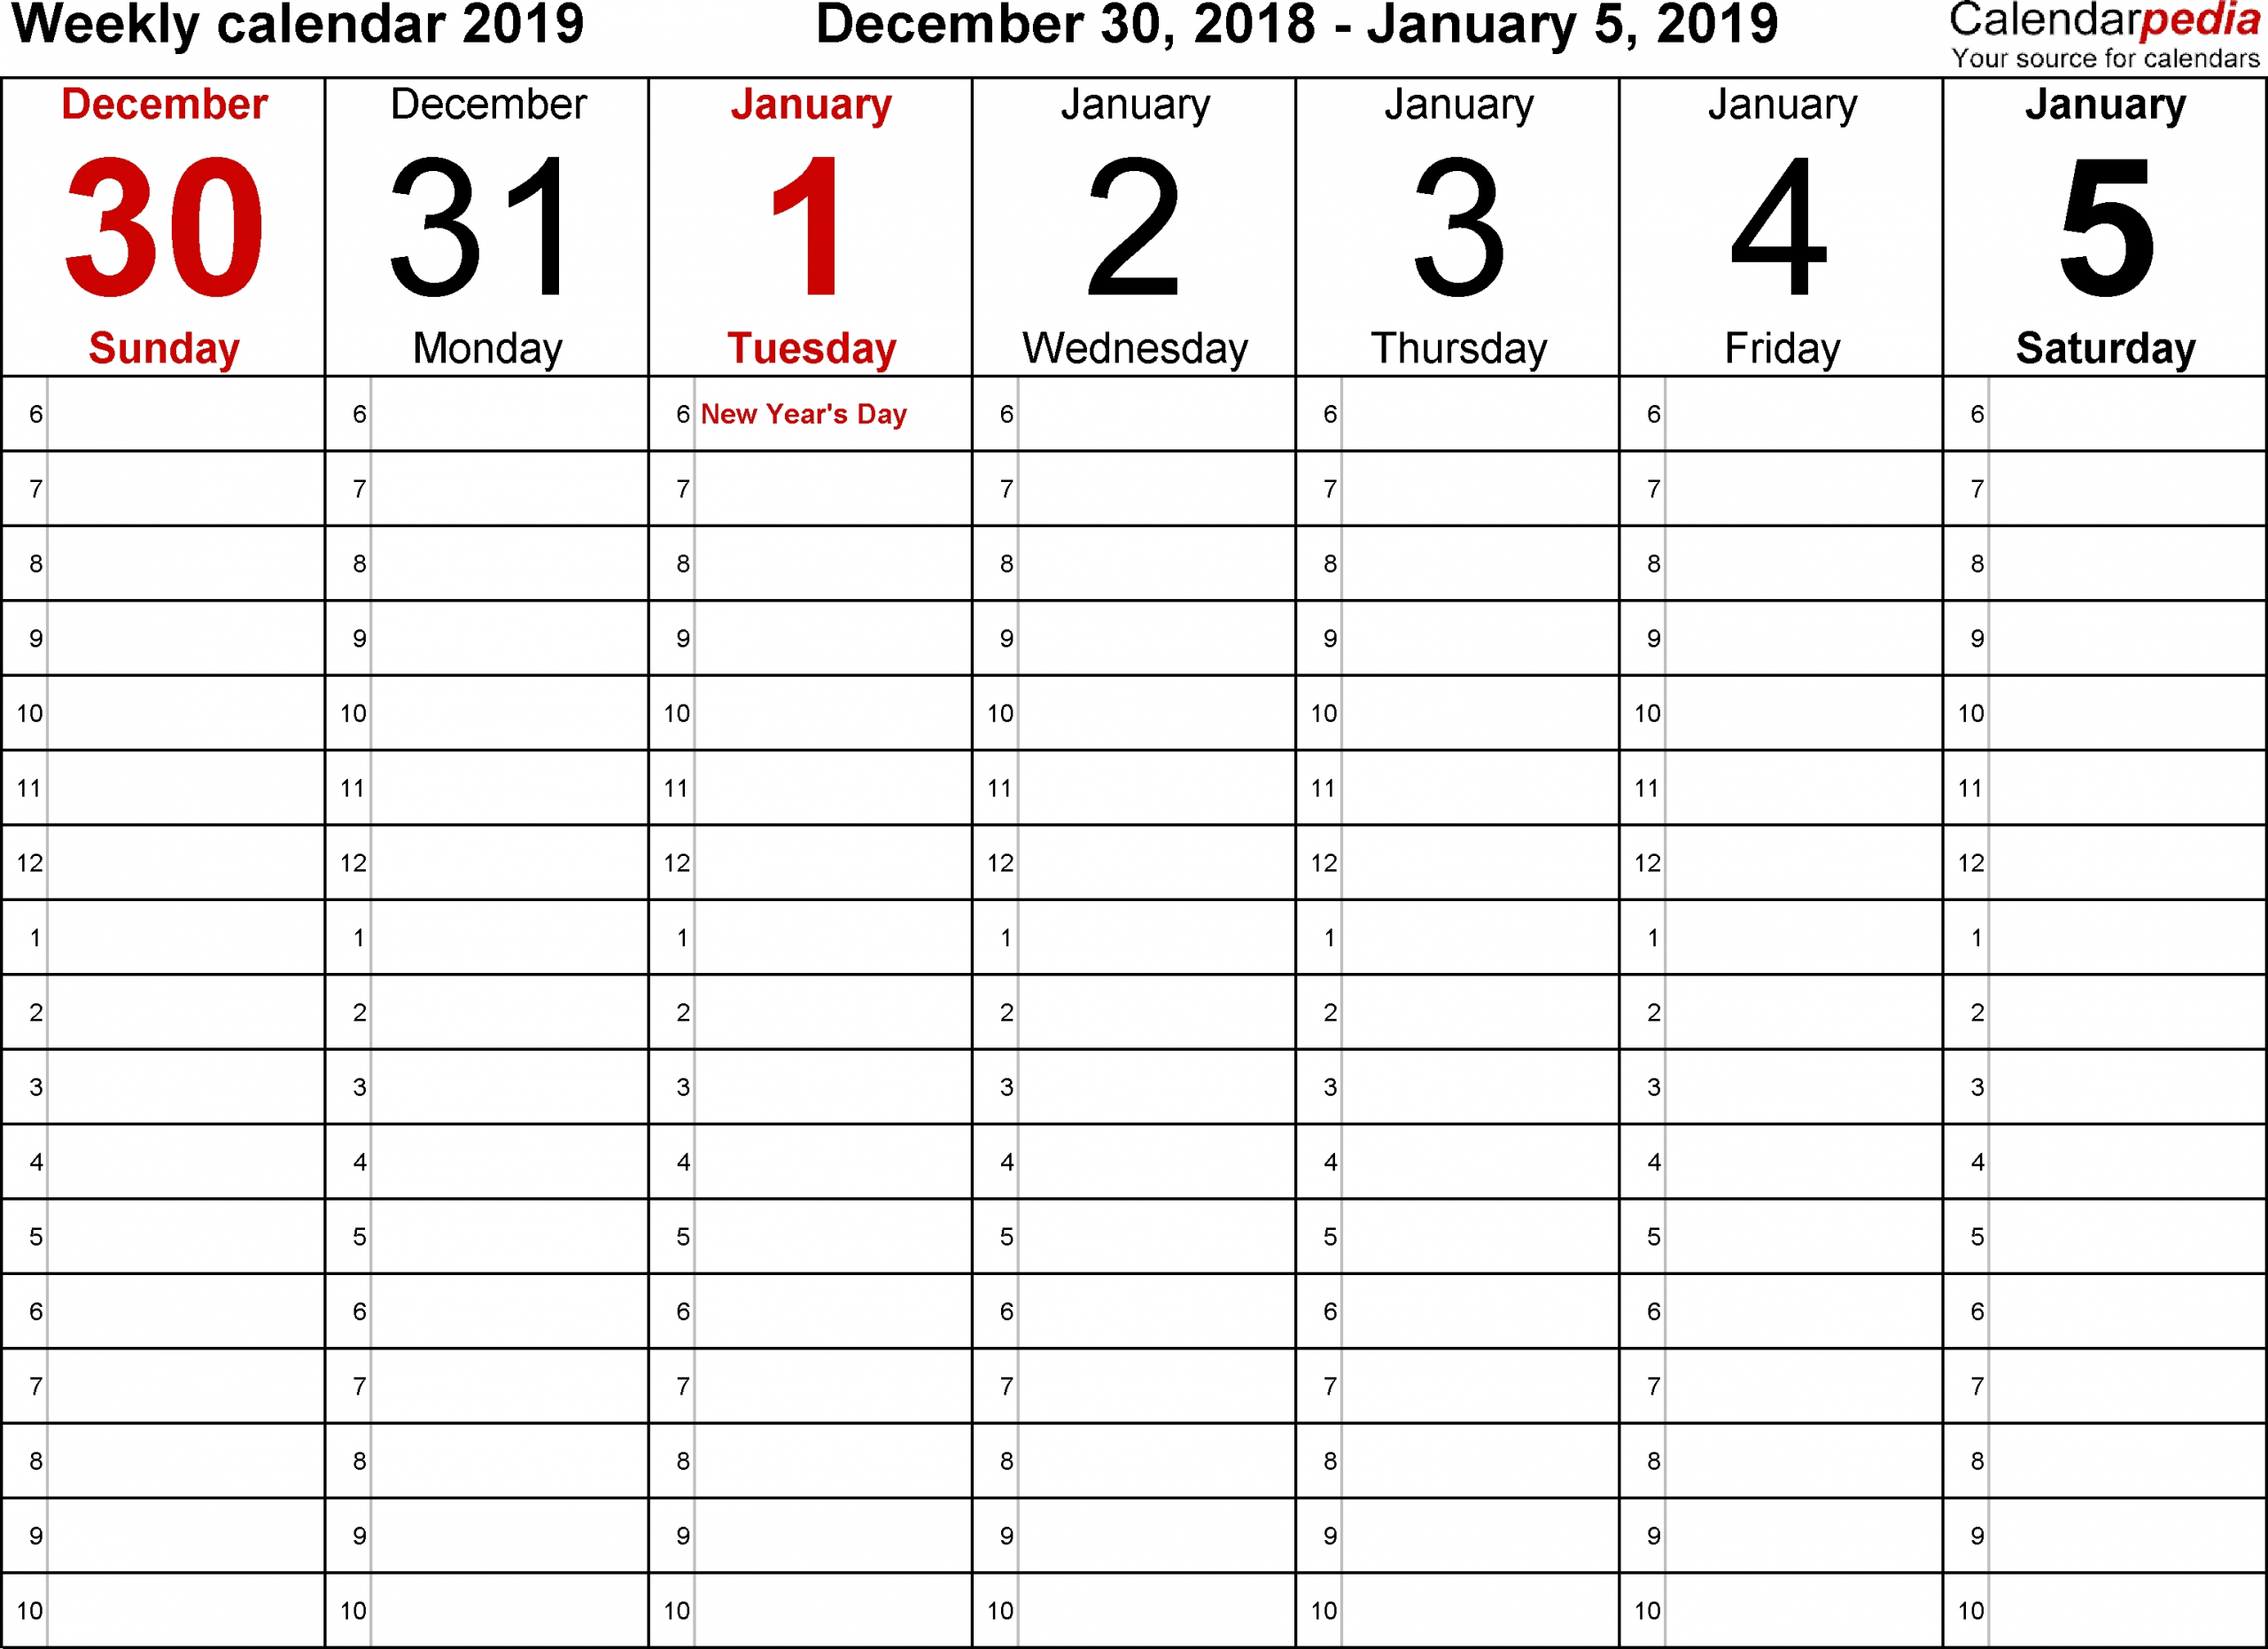 Blank Calendars To Print With Time Slots – Calendar Monthly Calendar With Time Slots Template